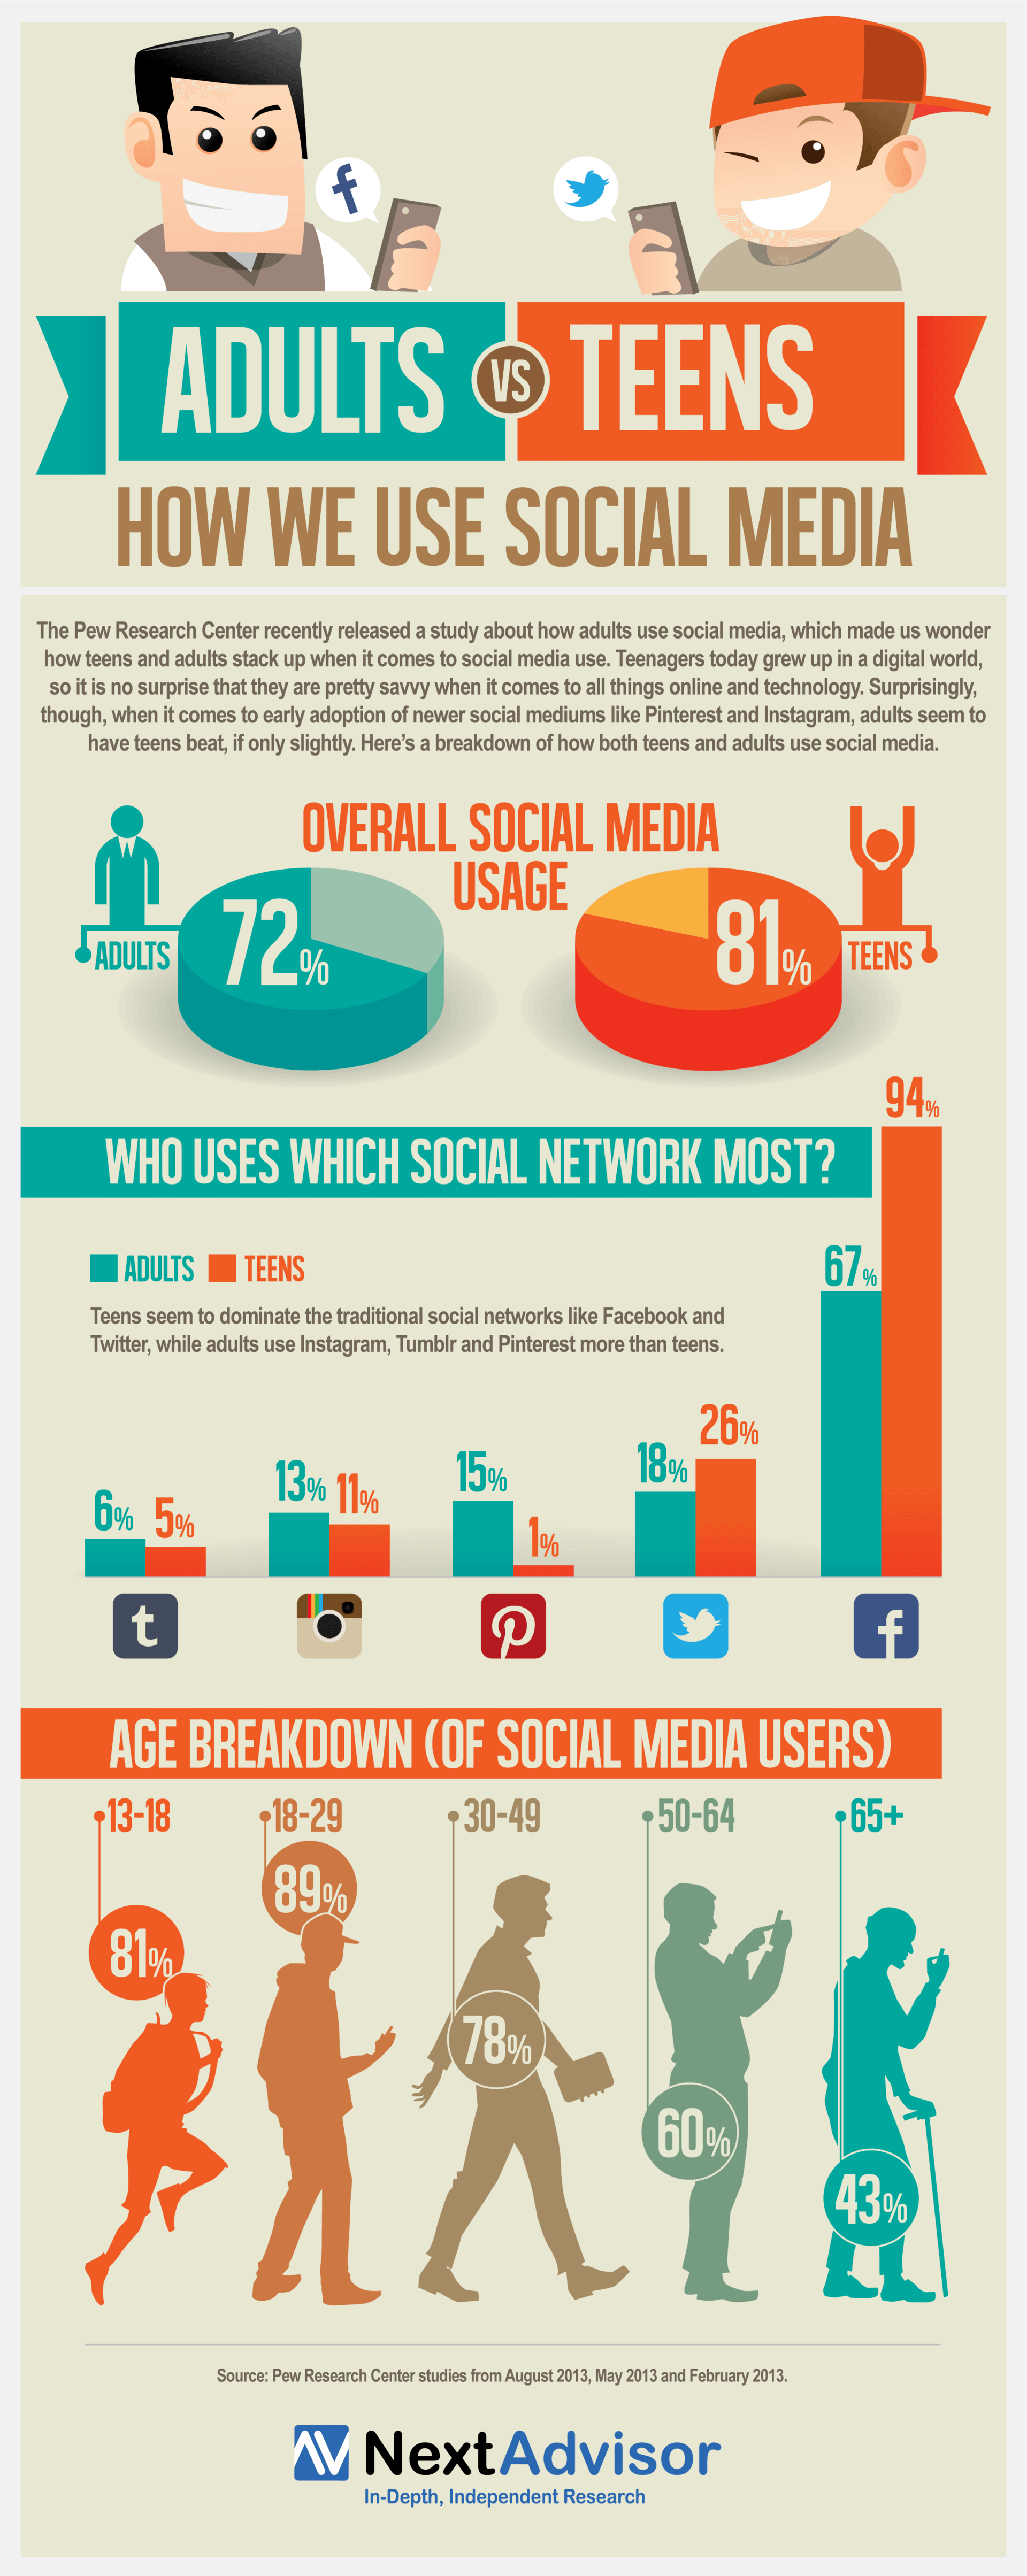 https://elearninginfographics.com/wp-content/uploads/How-Adults-and-Teens-Use-Social-Media-Infographic.png